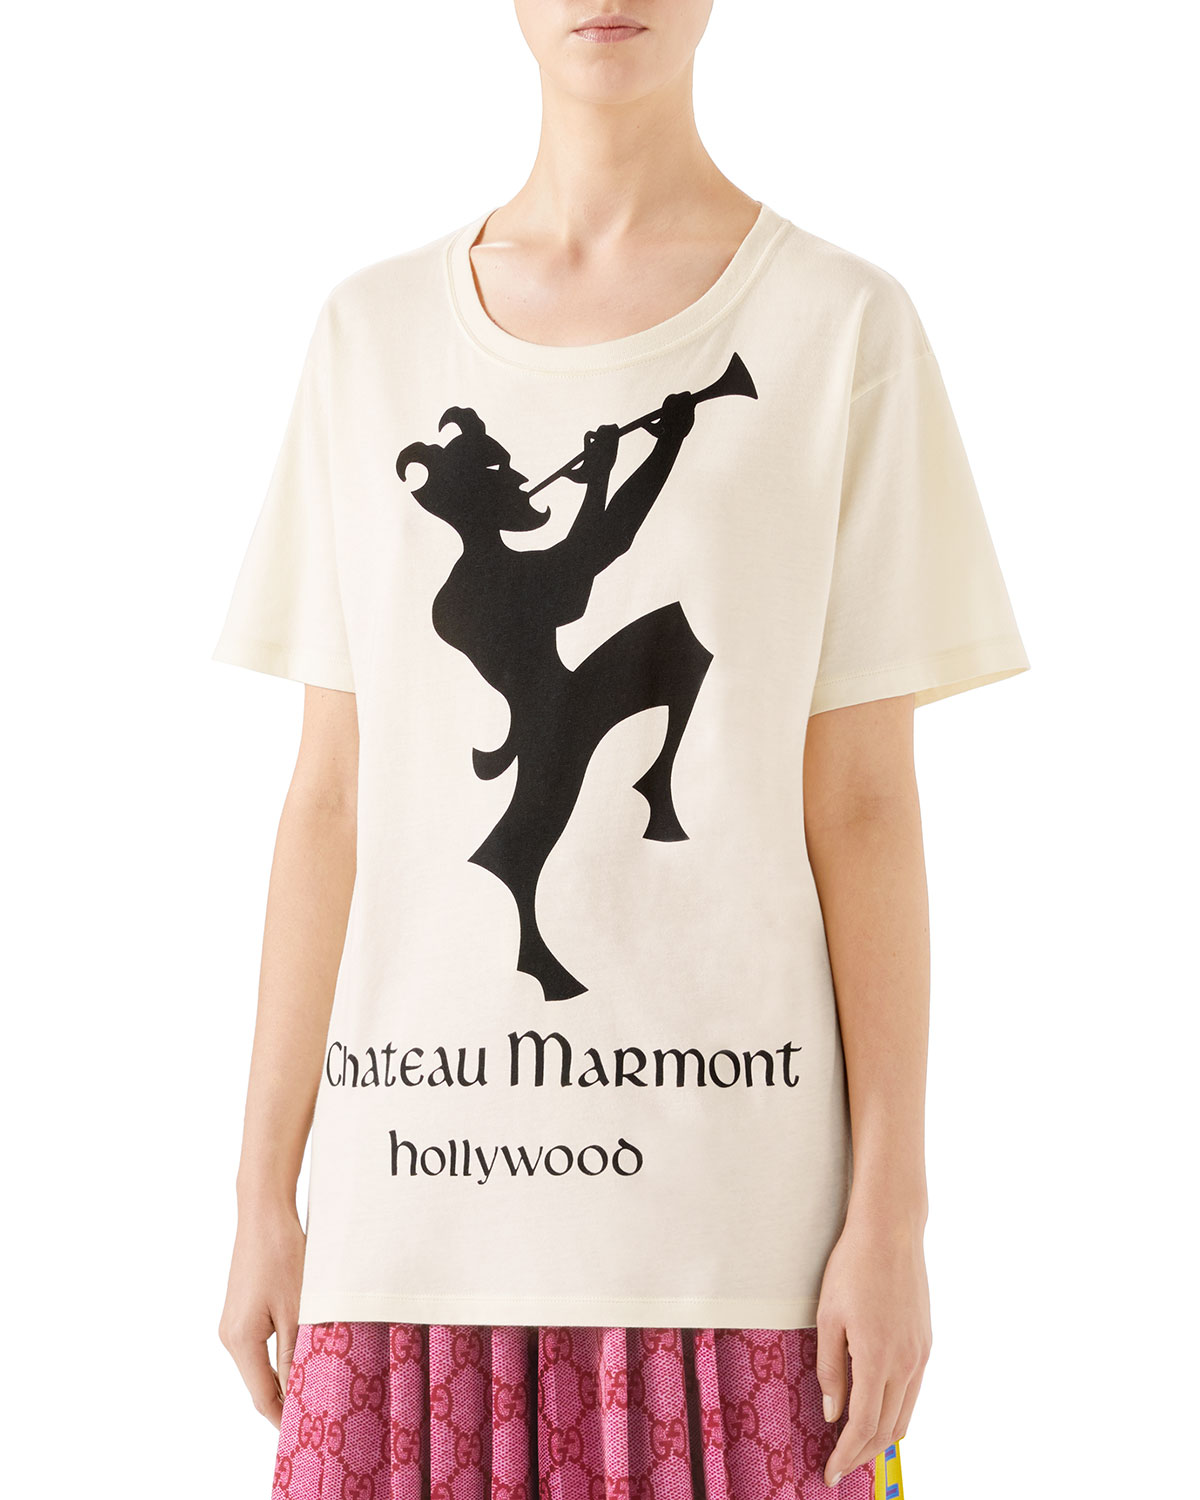 a5f99d826c6 Gucci Oversized Chateau Marmont T-Shirt